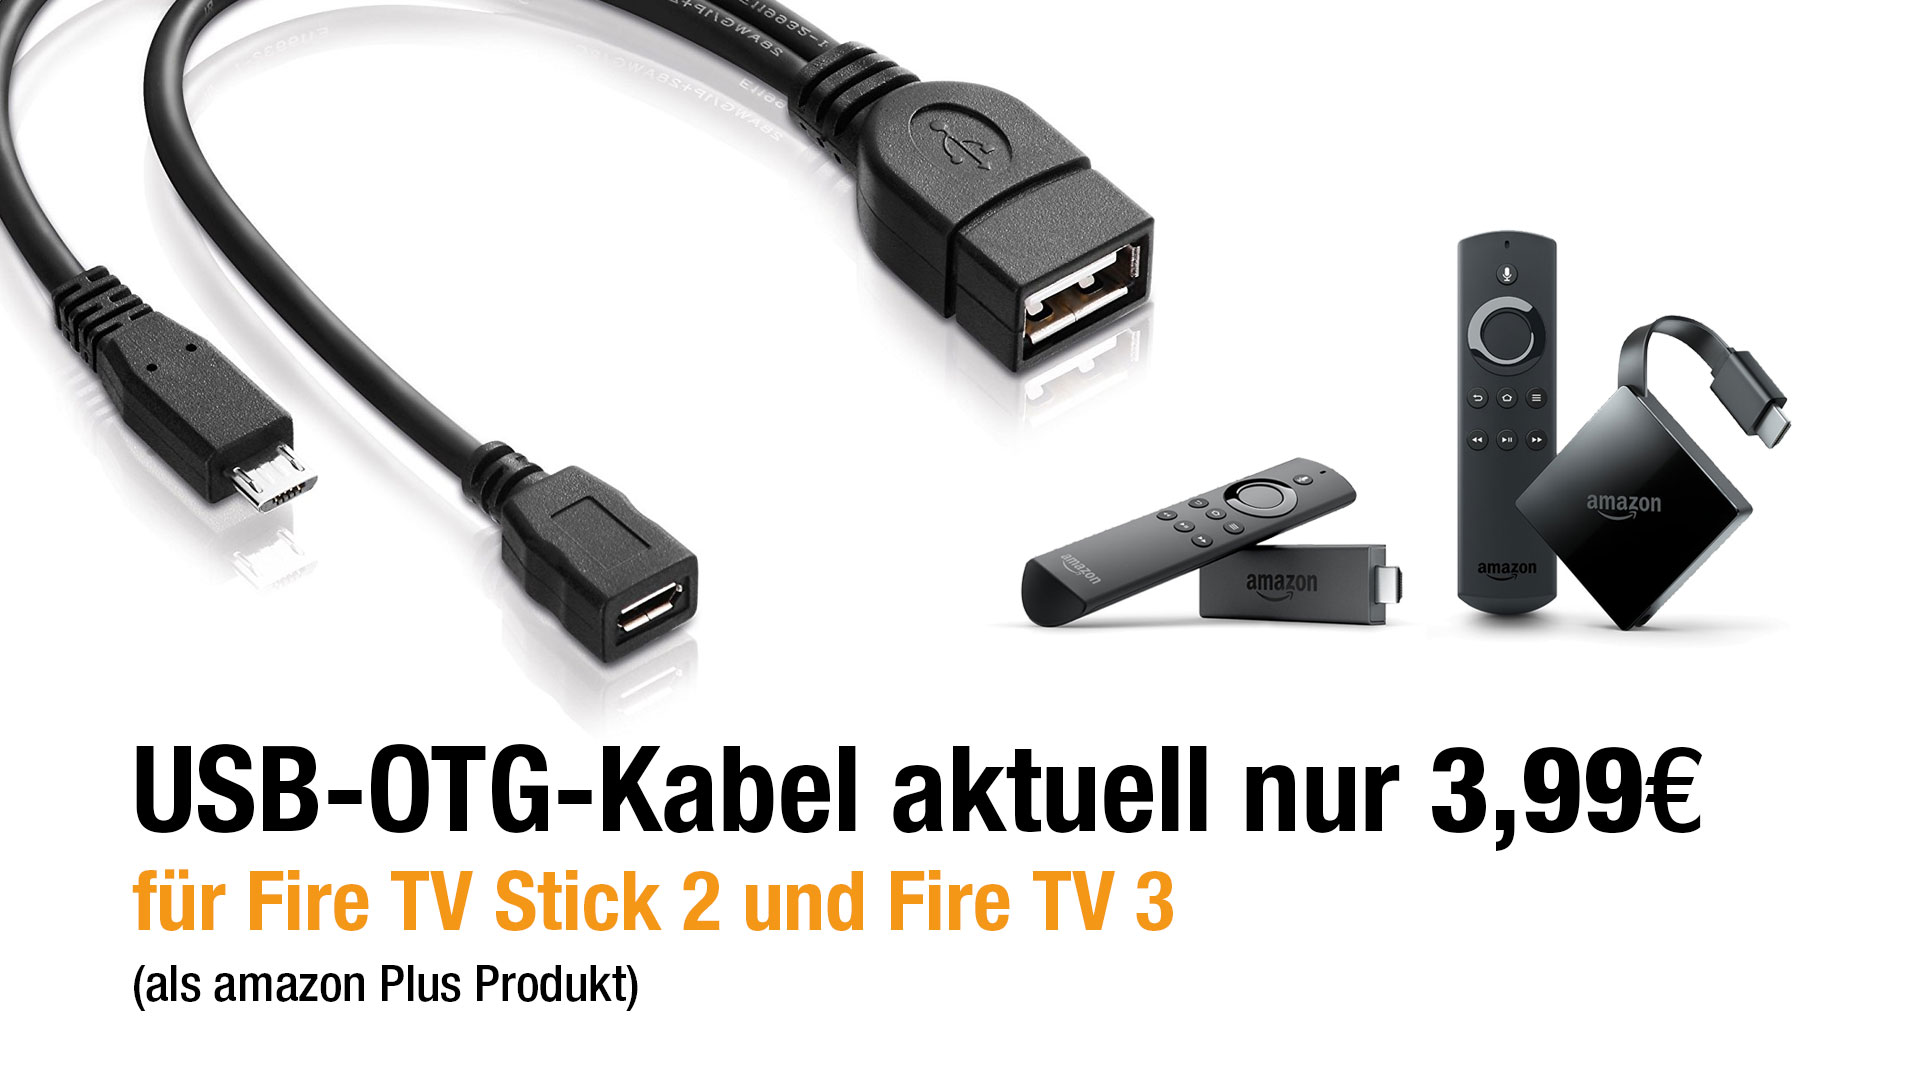 deal usb otg kabel f r fire stick 2 fire tv 3 aktuell f r 3 99. Black Bedroom Furniture Sets. Home Design Ideas